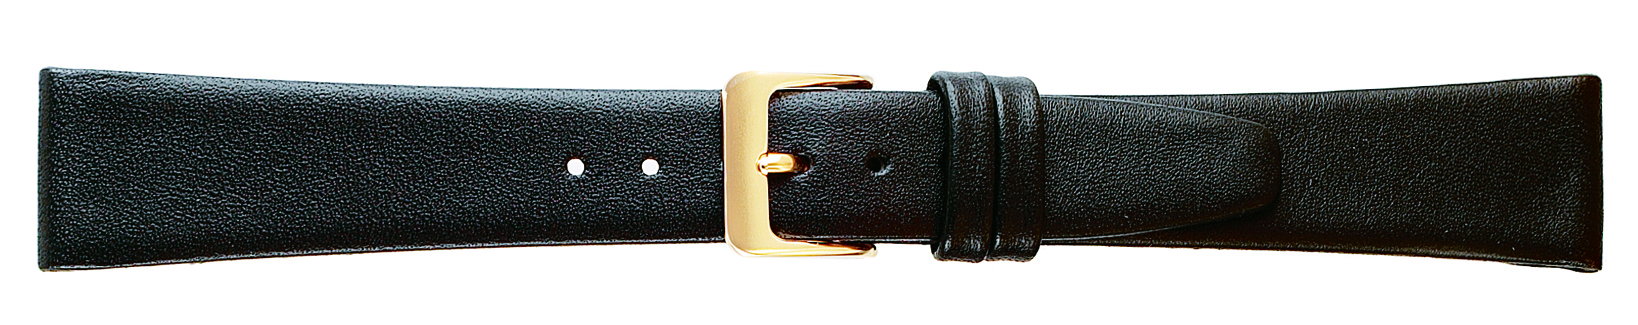 11MM Leather Band Black Smooth Calf-0